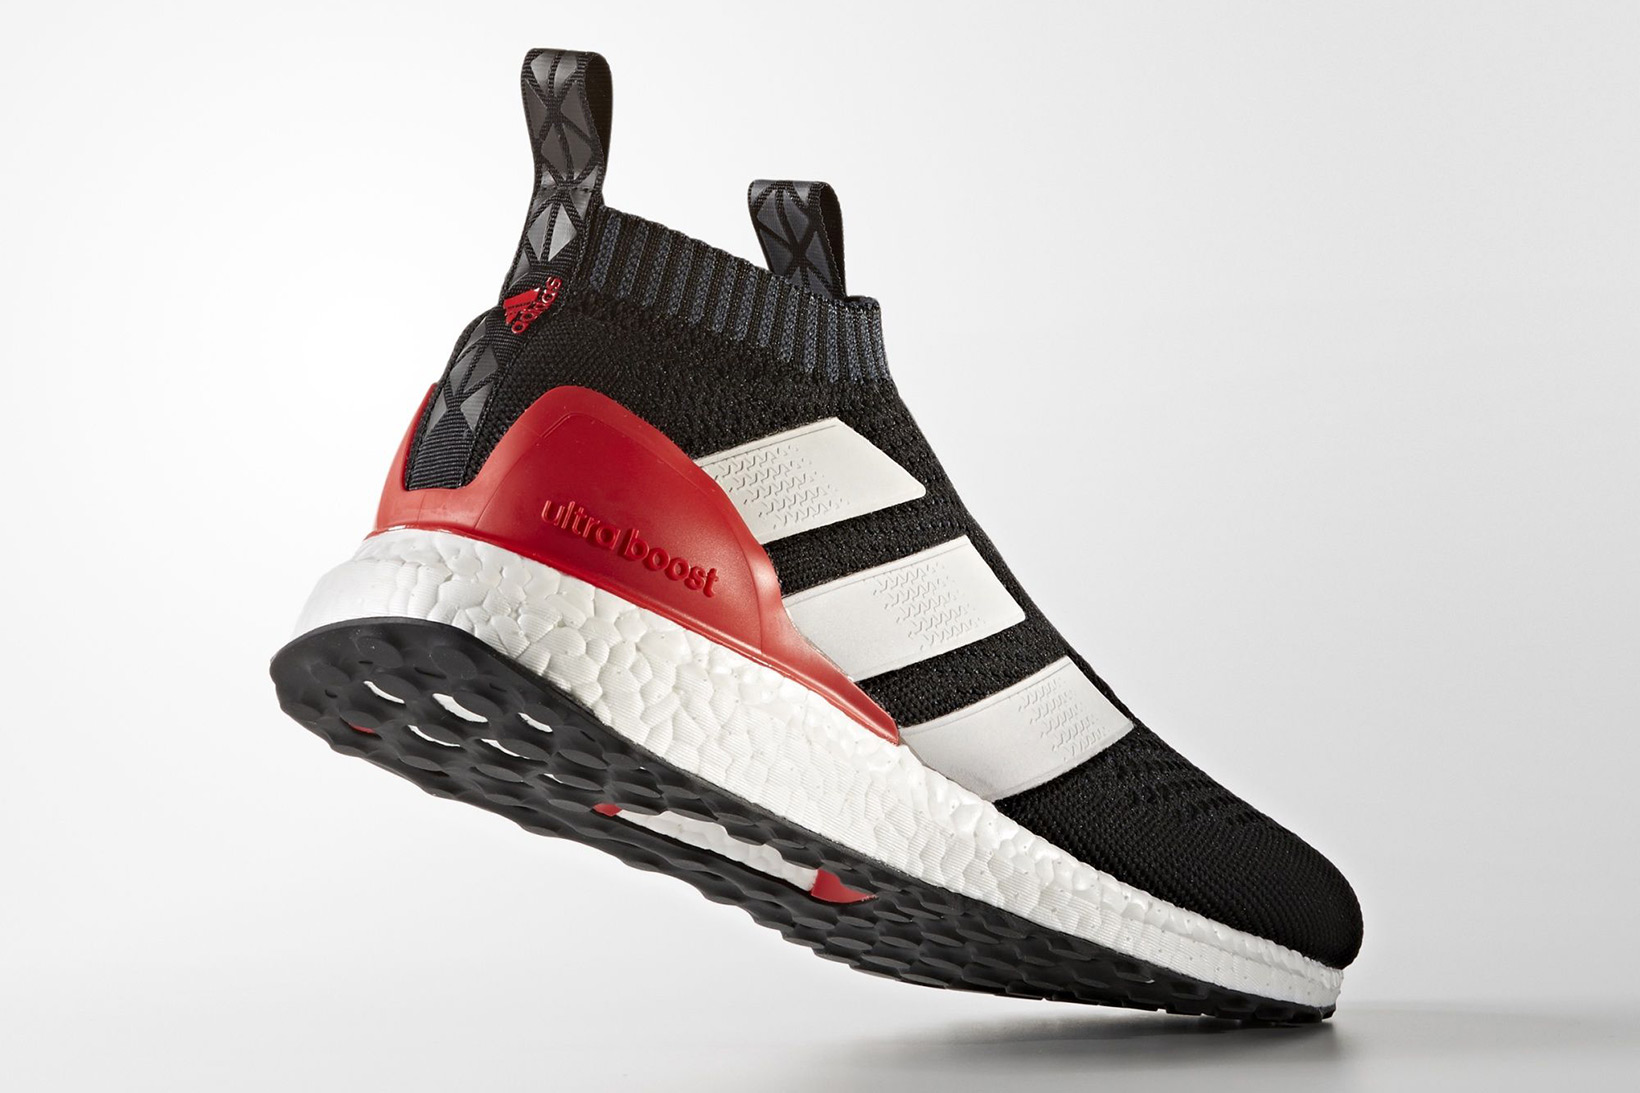 Upcoming Adidas Boost Shoes